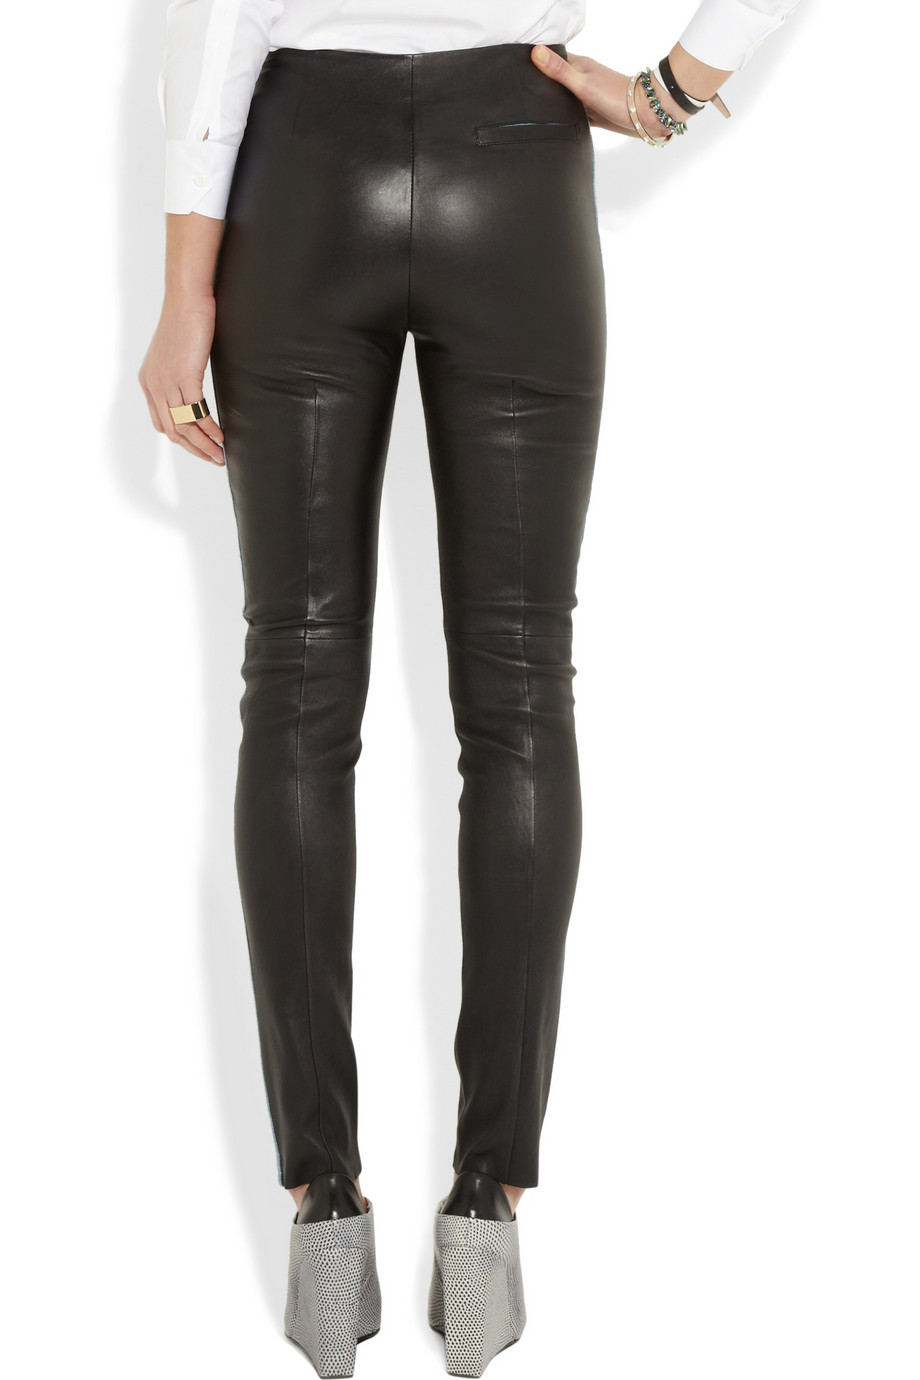 Acne studios Best Leather and Stretchdenim Leggingsstyle Pants in ...